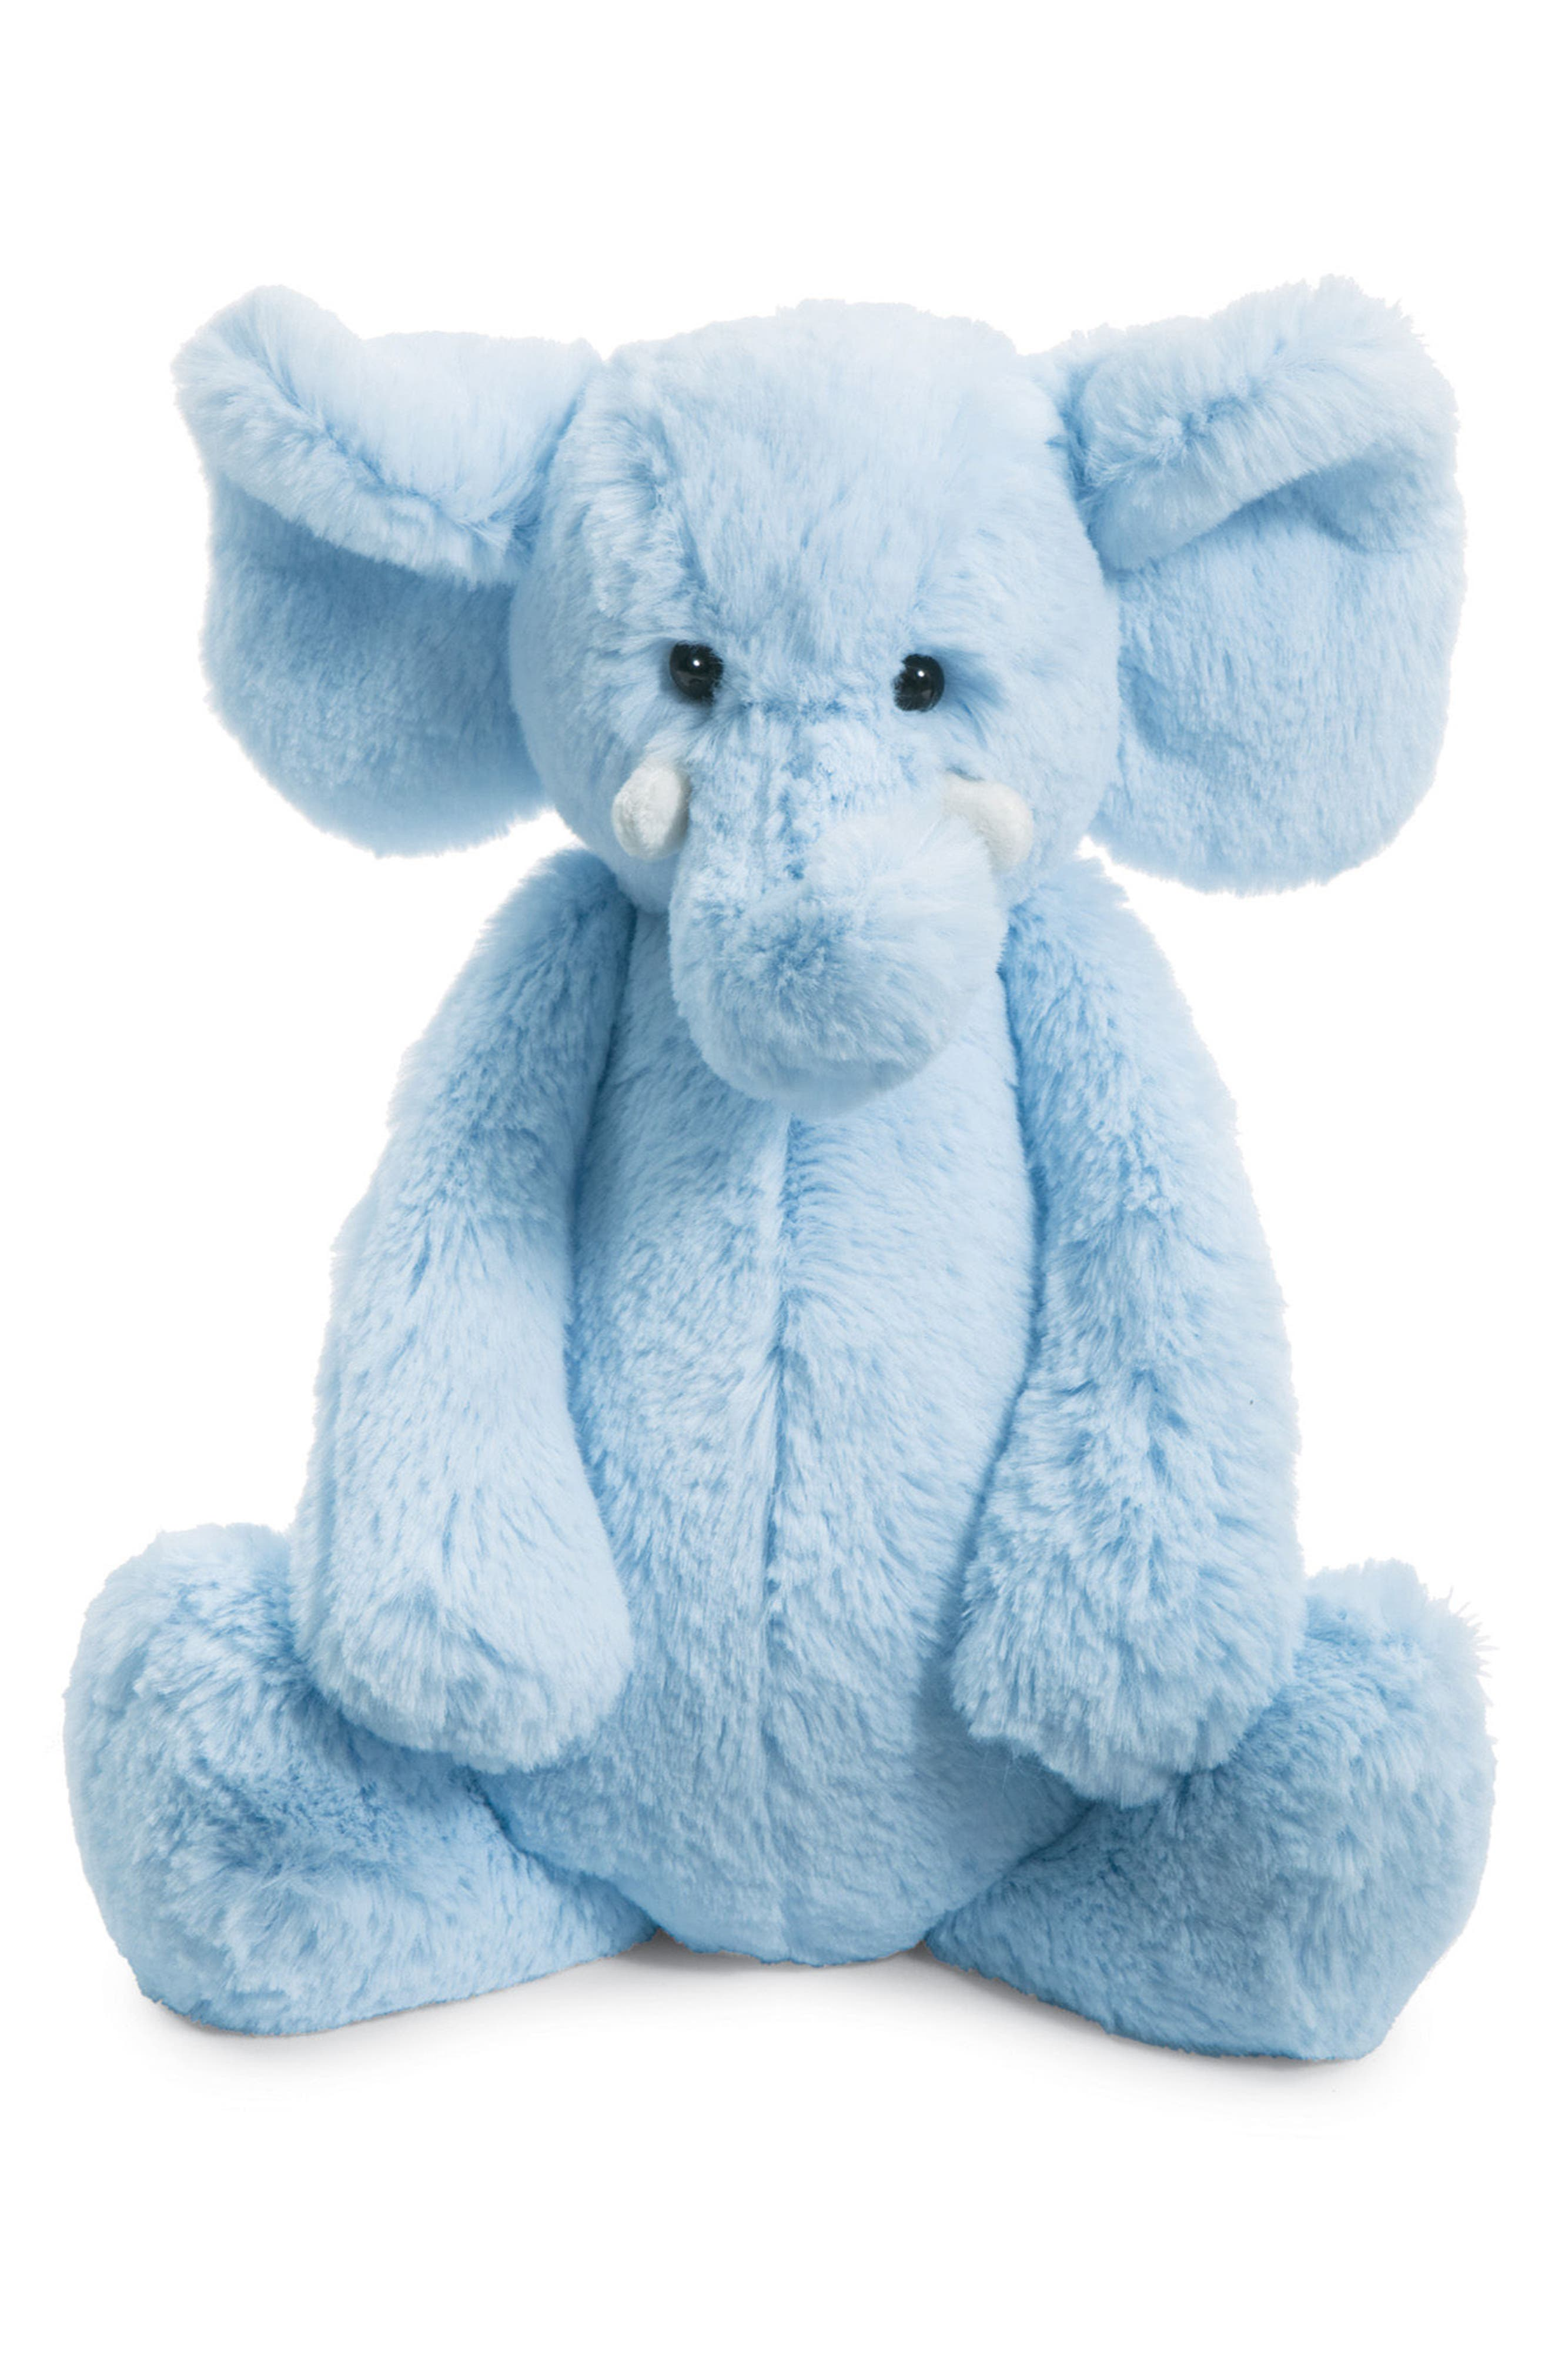 Jellycat Chime Stuffed Elephant (Nordstrom Exclusive)